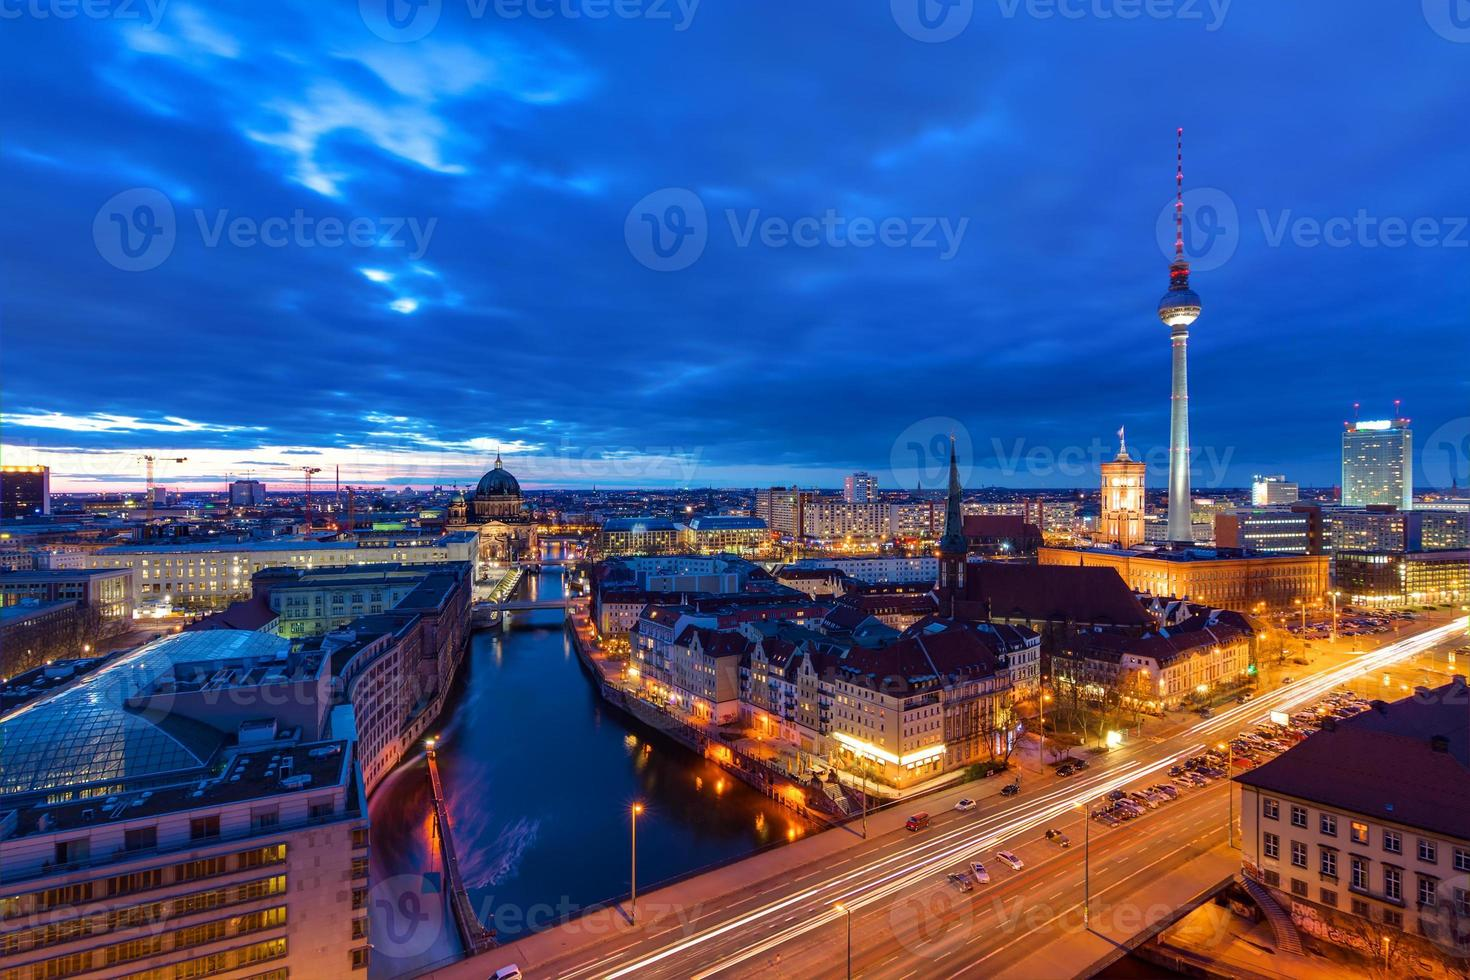 The center of Berlin after sunset photo